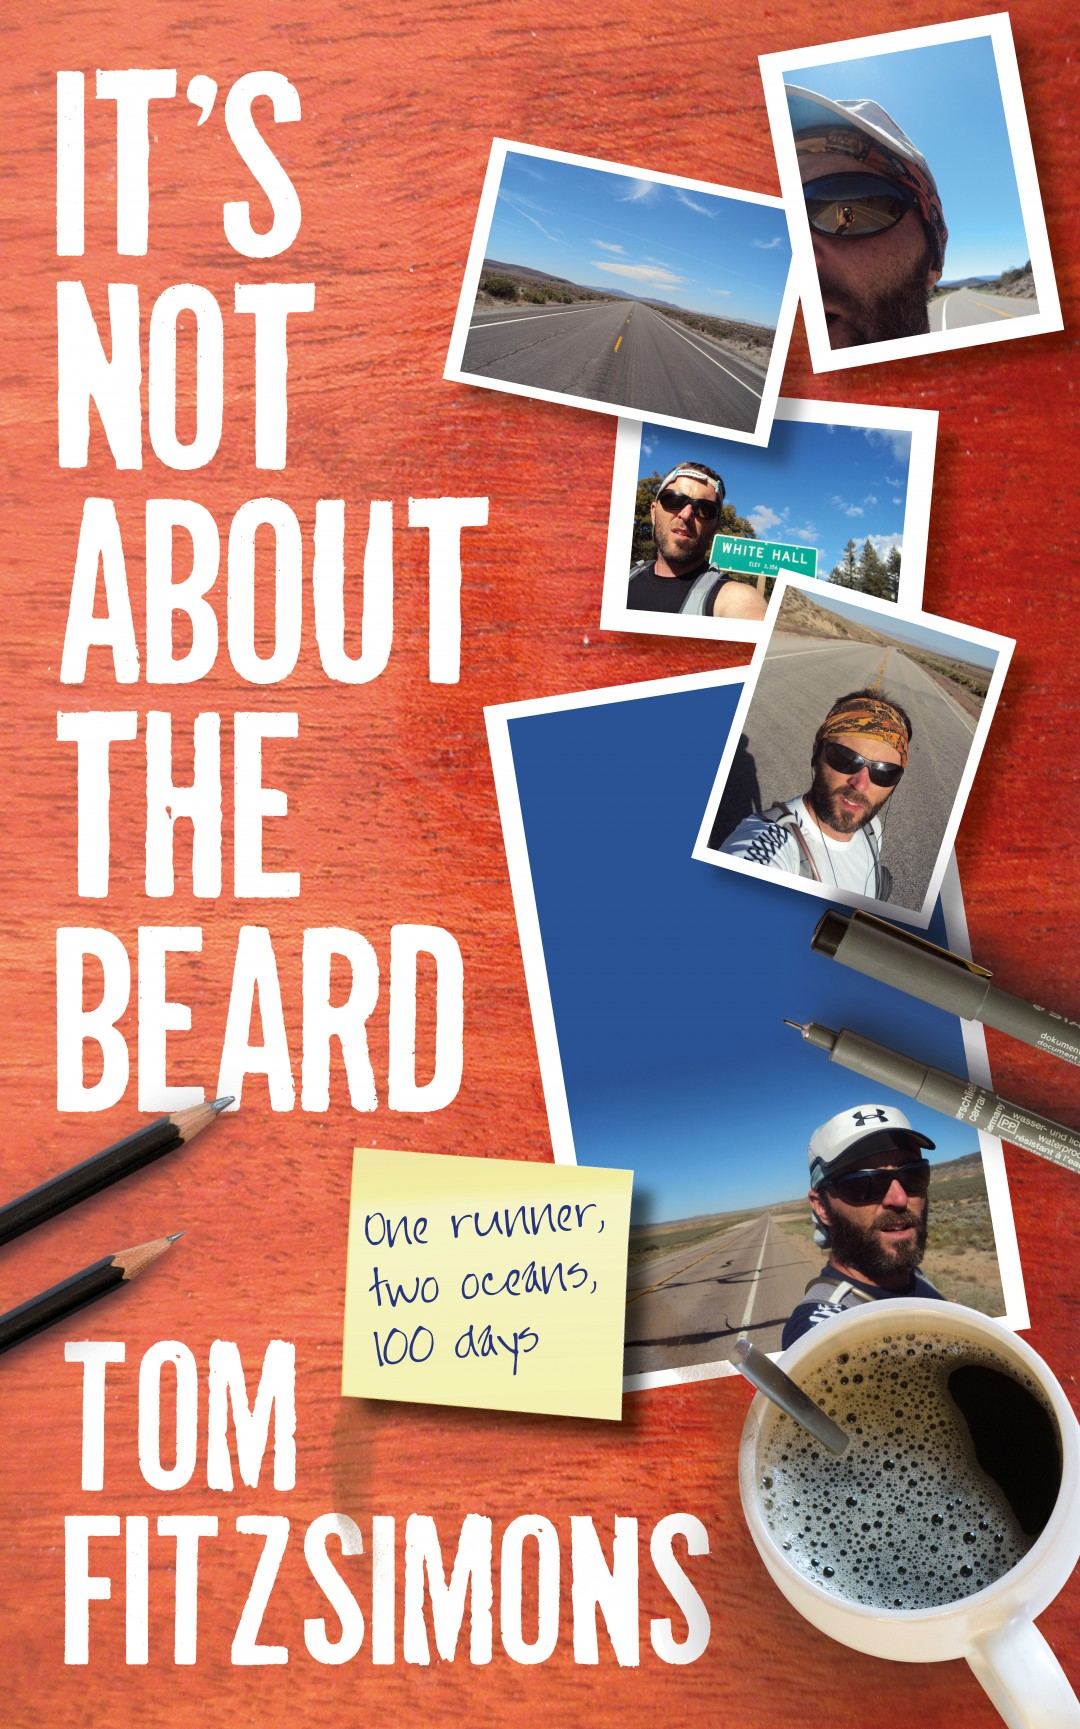 It's not about the beard